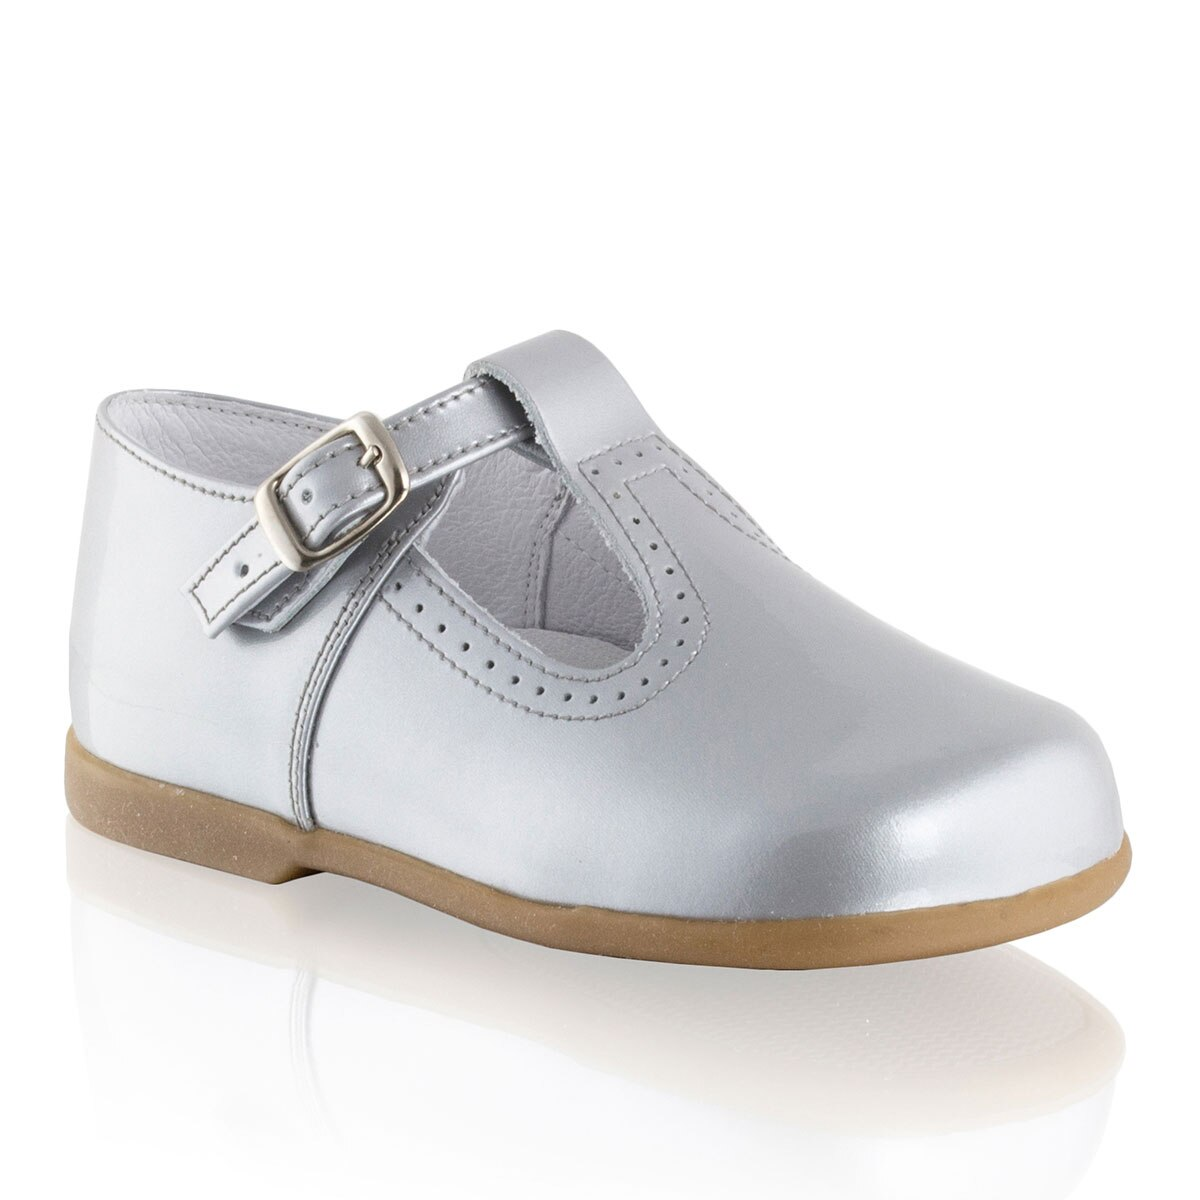 Russell and Bromley BUCKLE-T T-Bar Buckle Pram Shoe